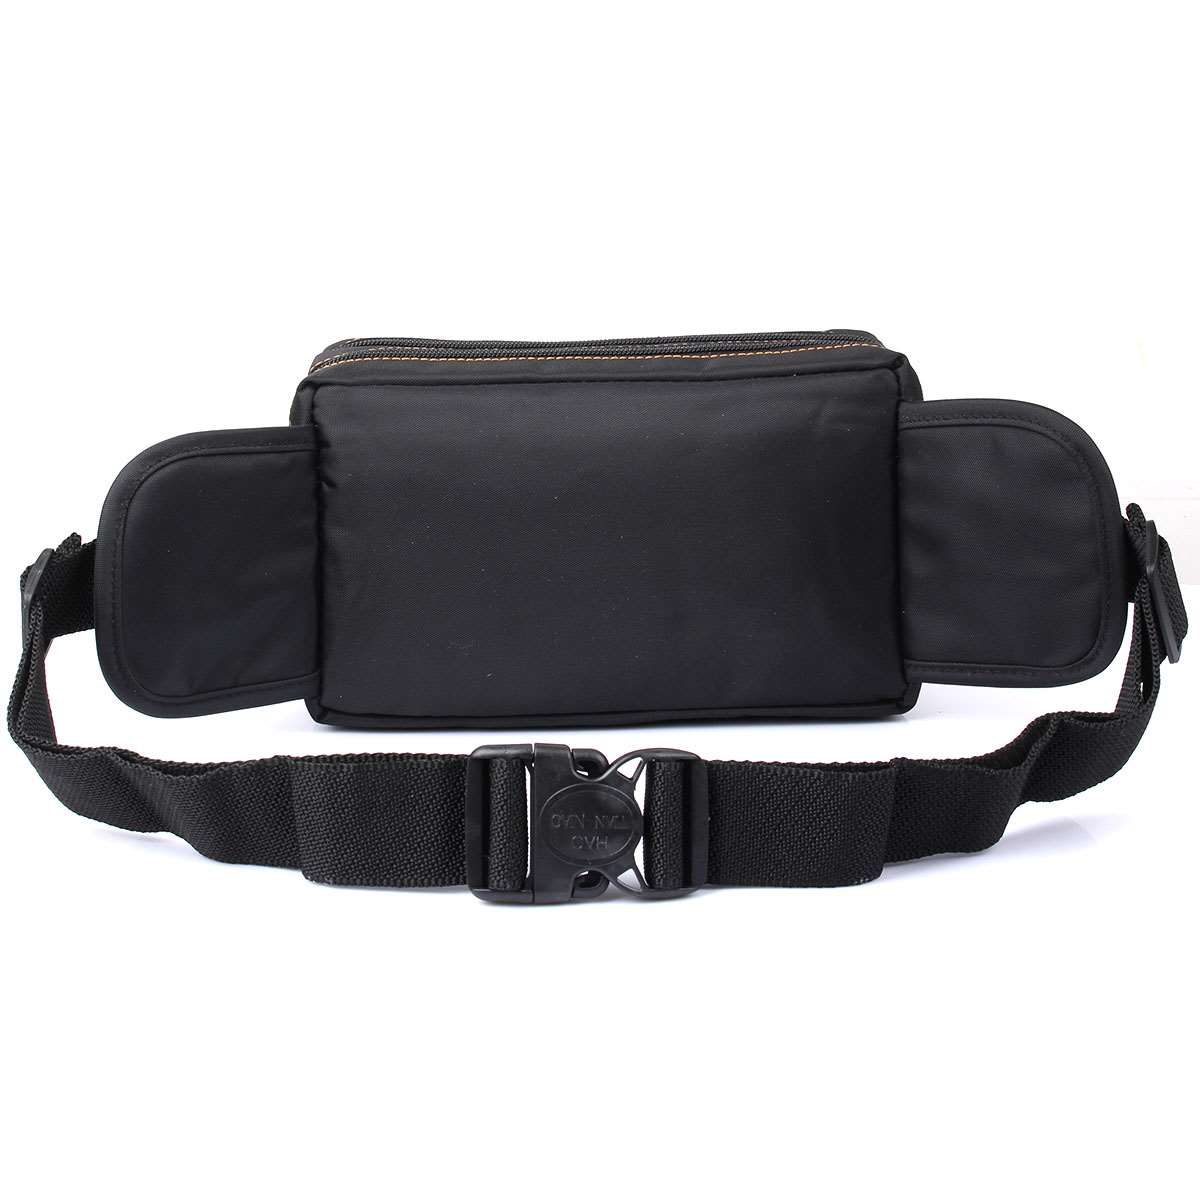 S waist bag mens and womens multi-functional large capacity waterproof canvas mens chest bag outdoor WALLET business bag Crossbody back